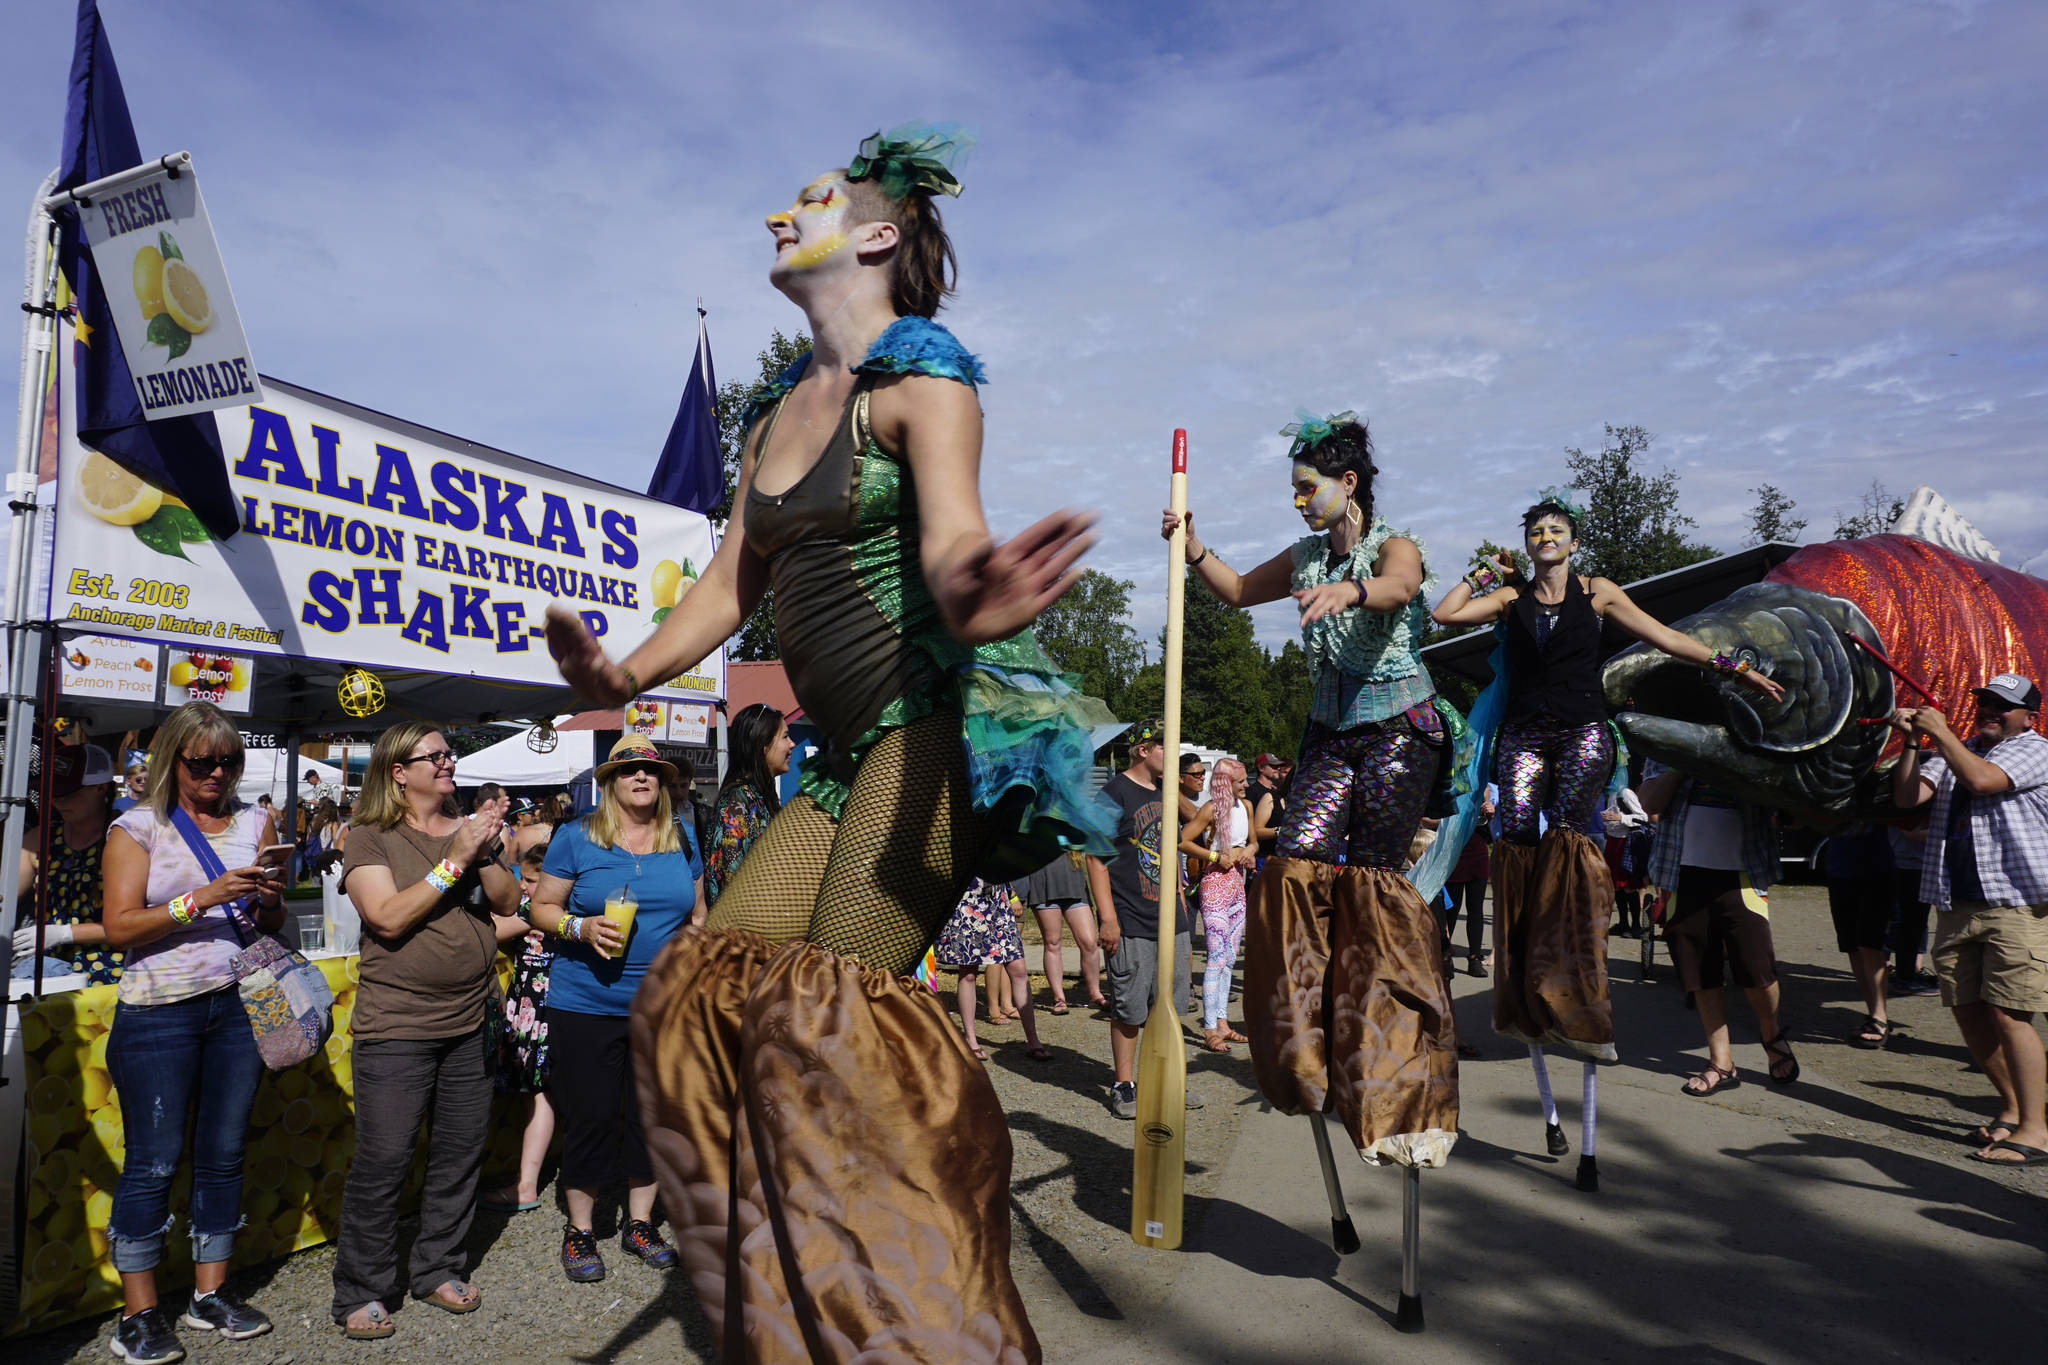 An art and music performance during Salmonfest on Saturday, Aug. 4, 2018, featured women on stilts dressed as mermaids, salmon sculptures and the LowDown Brass Band. Salmonfest attendees enjoyed warm sunny weather on Saturday at the Kenai Peninsula Fairgrounds in Ninilchik, Alaska. (Photo by Michael Armstrong/Homer News)